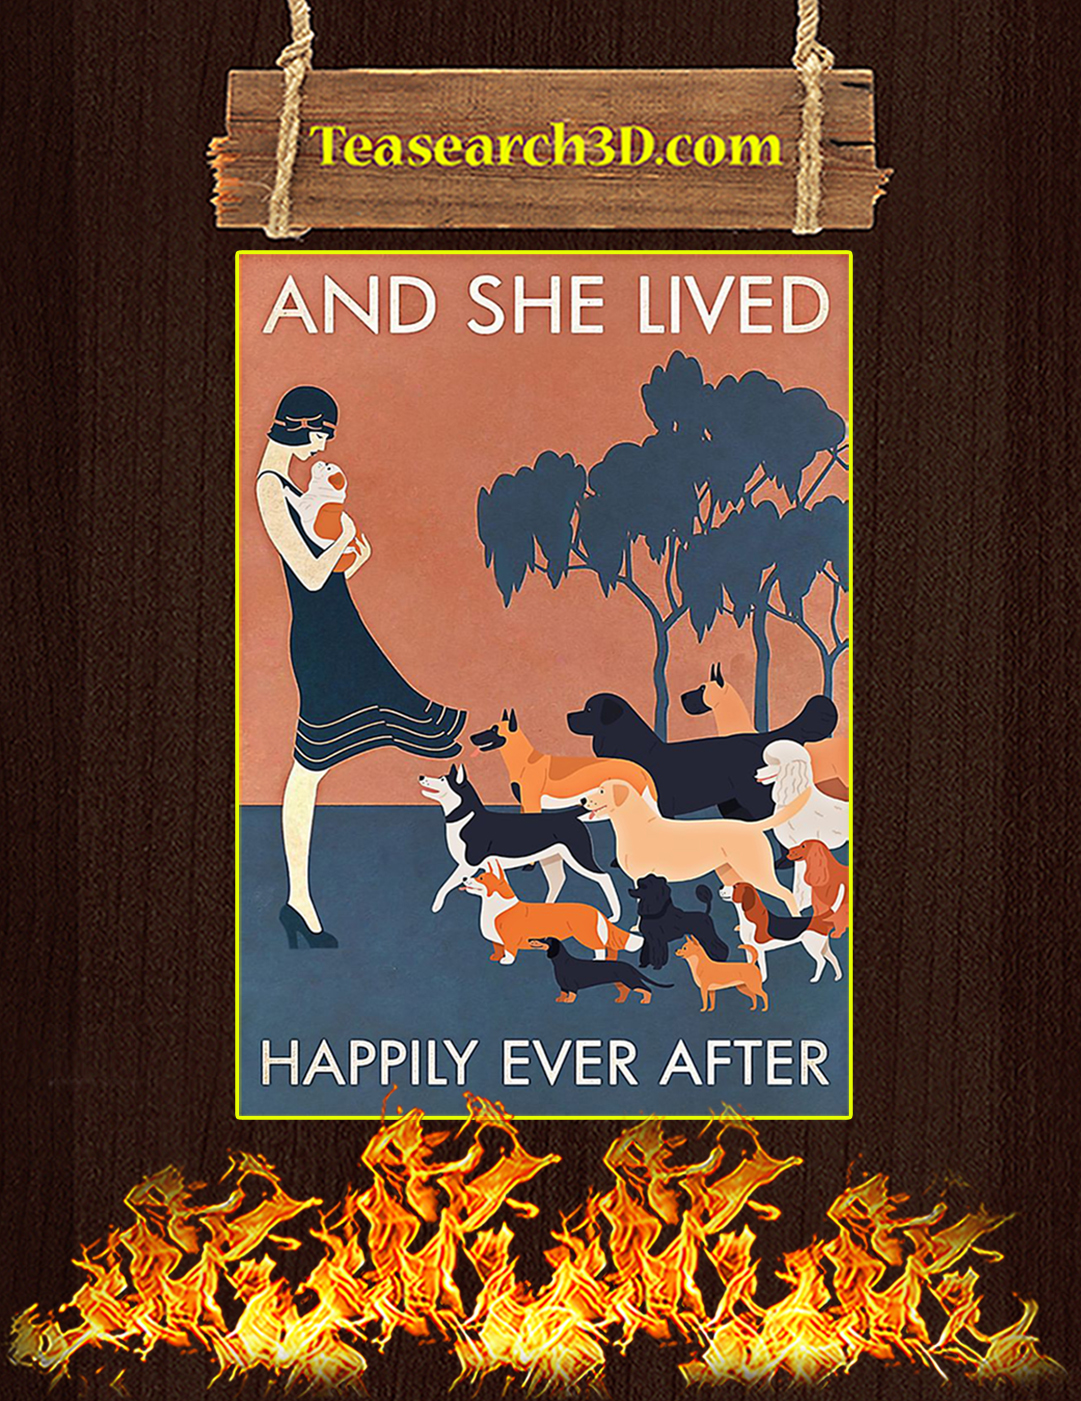 Dogs And she lived happily ever after poster A2